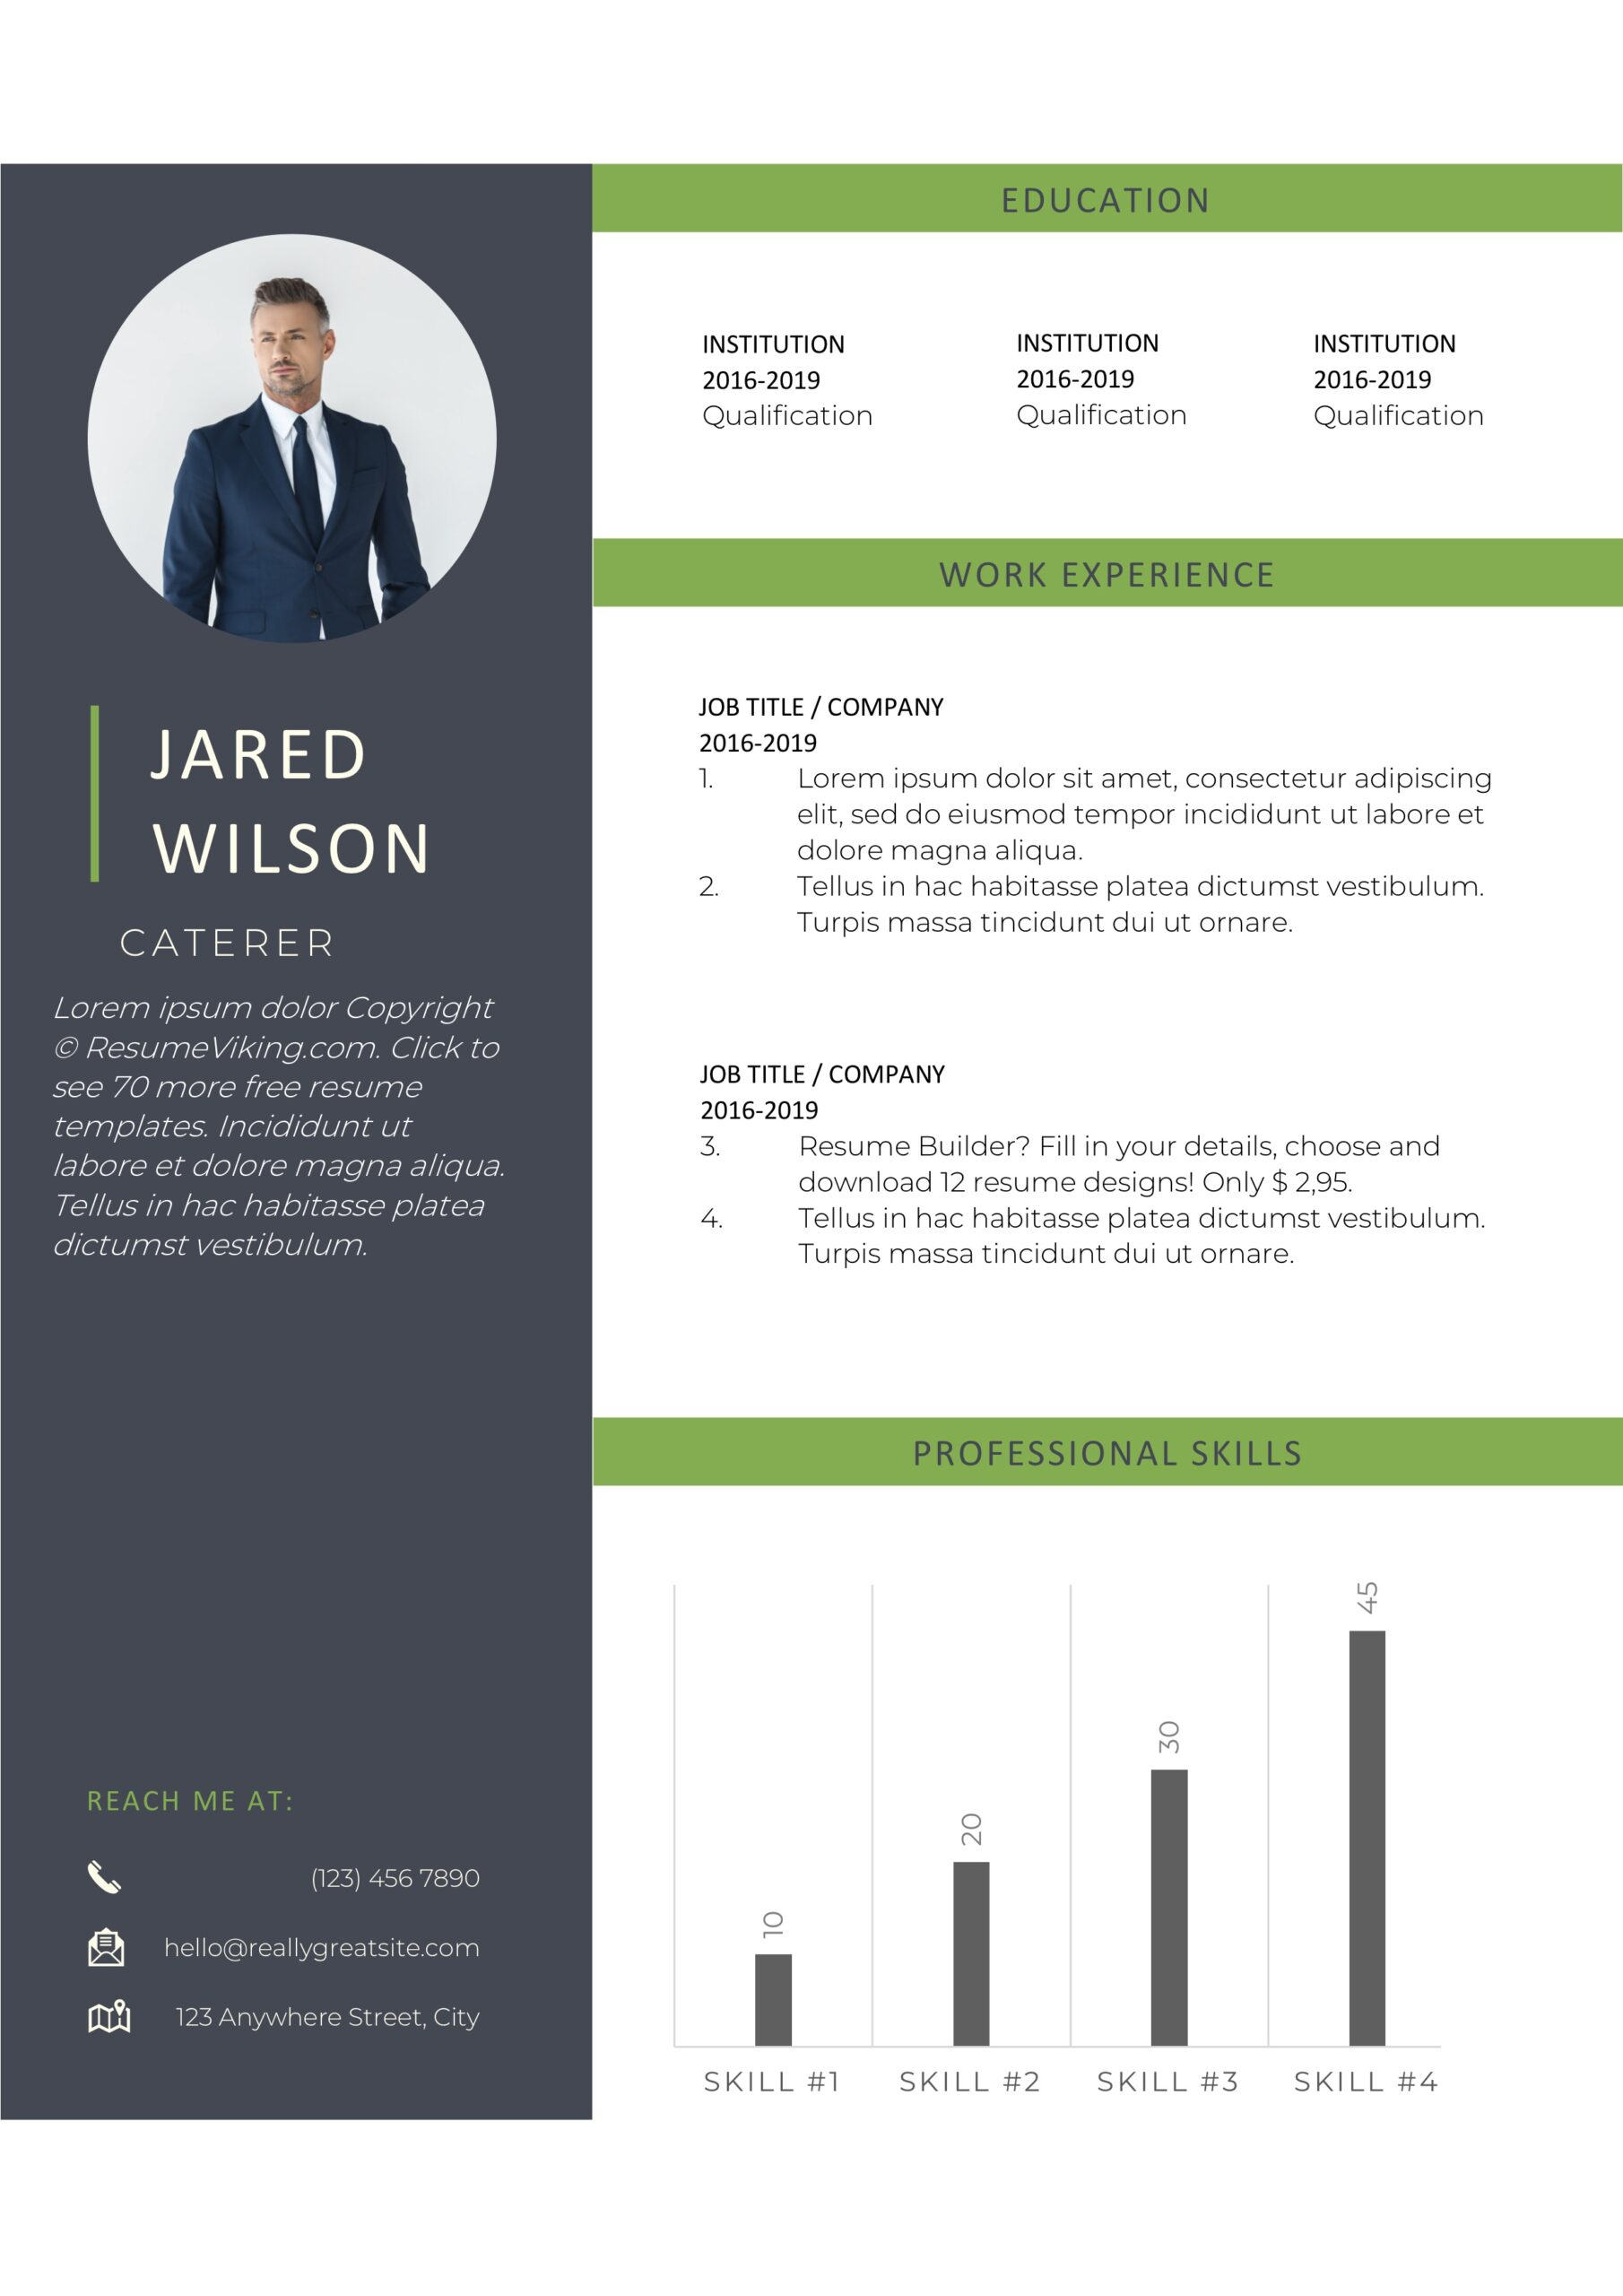 resume templates pdf word free downloads and guides grace resumeviking graphic design Resume Resume Templates 2020 Free